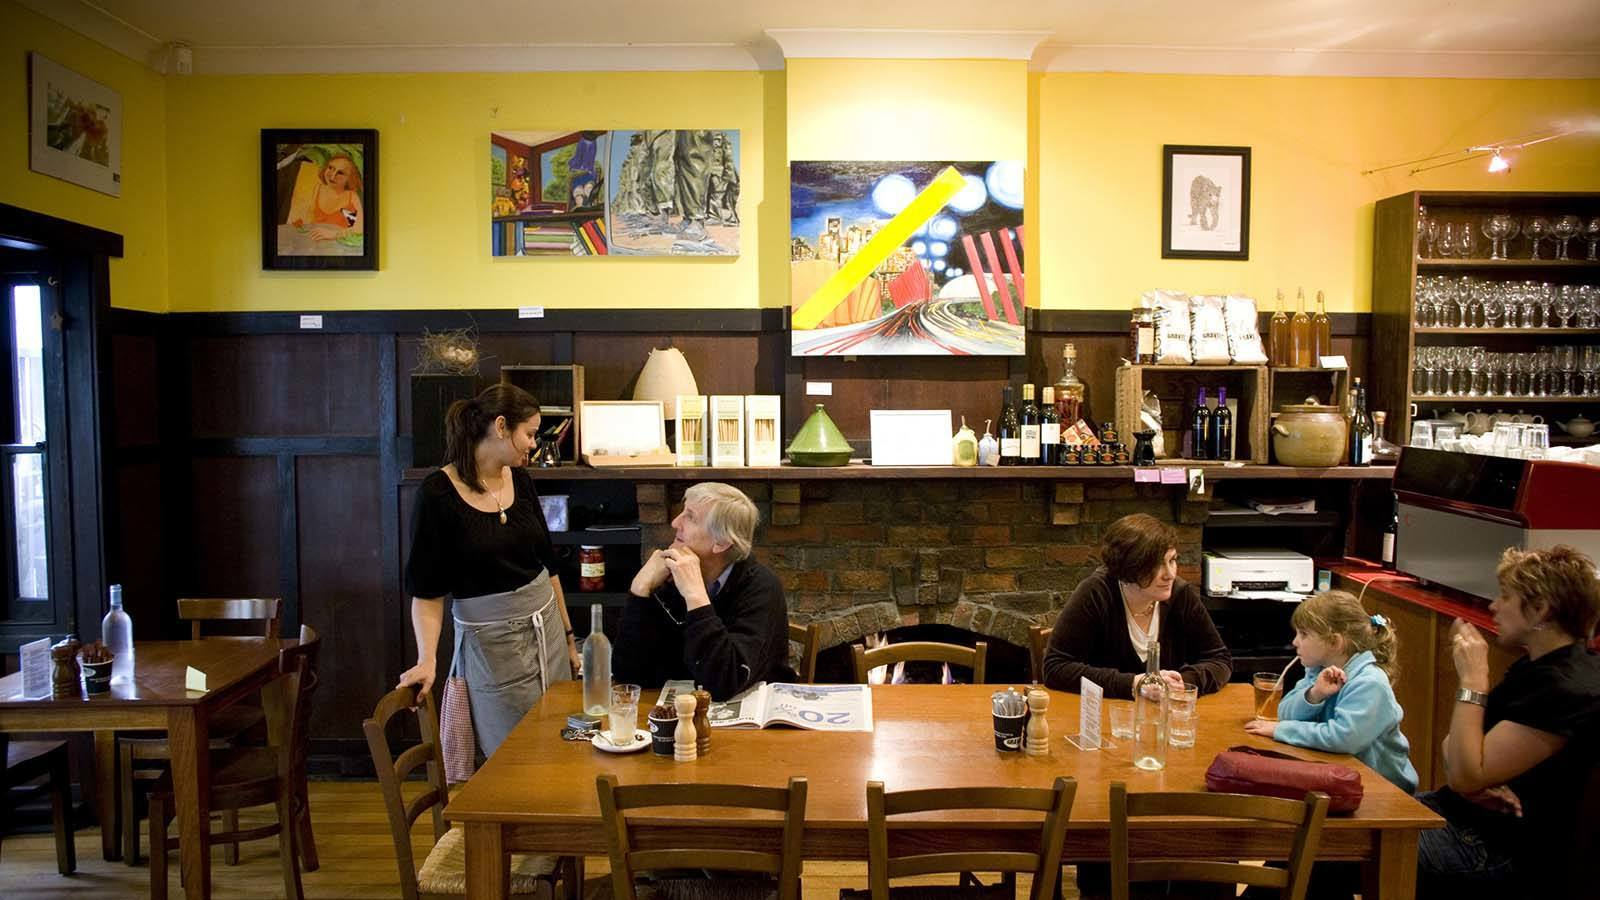 Ripe Cafe, Yarra Valley and Dandenong Ranges, Victoria, Australia